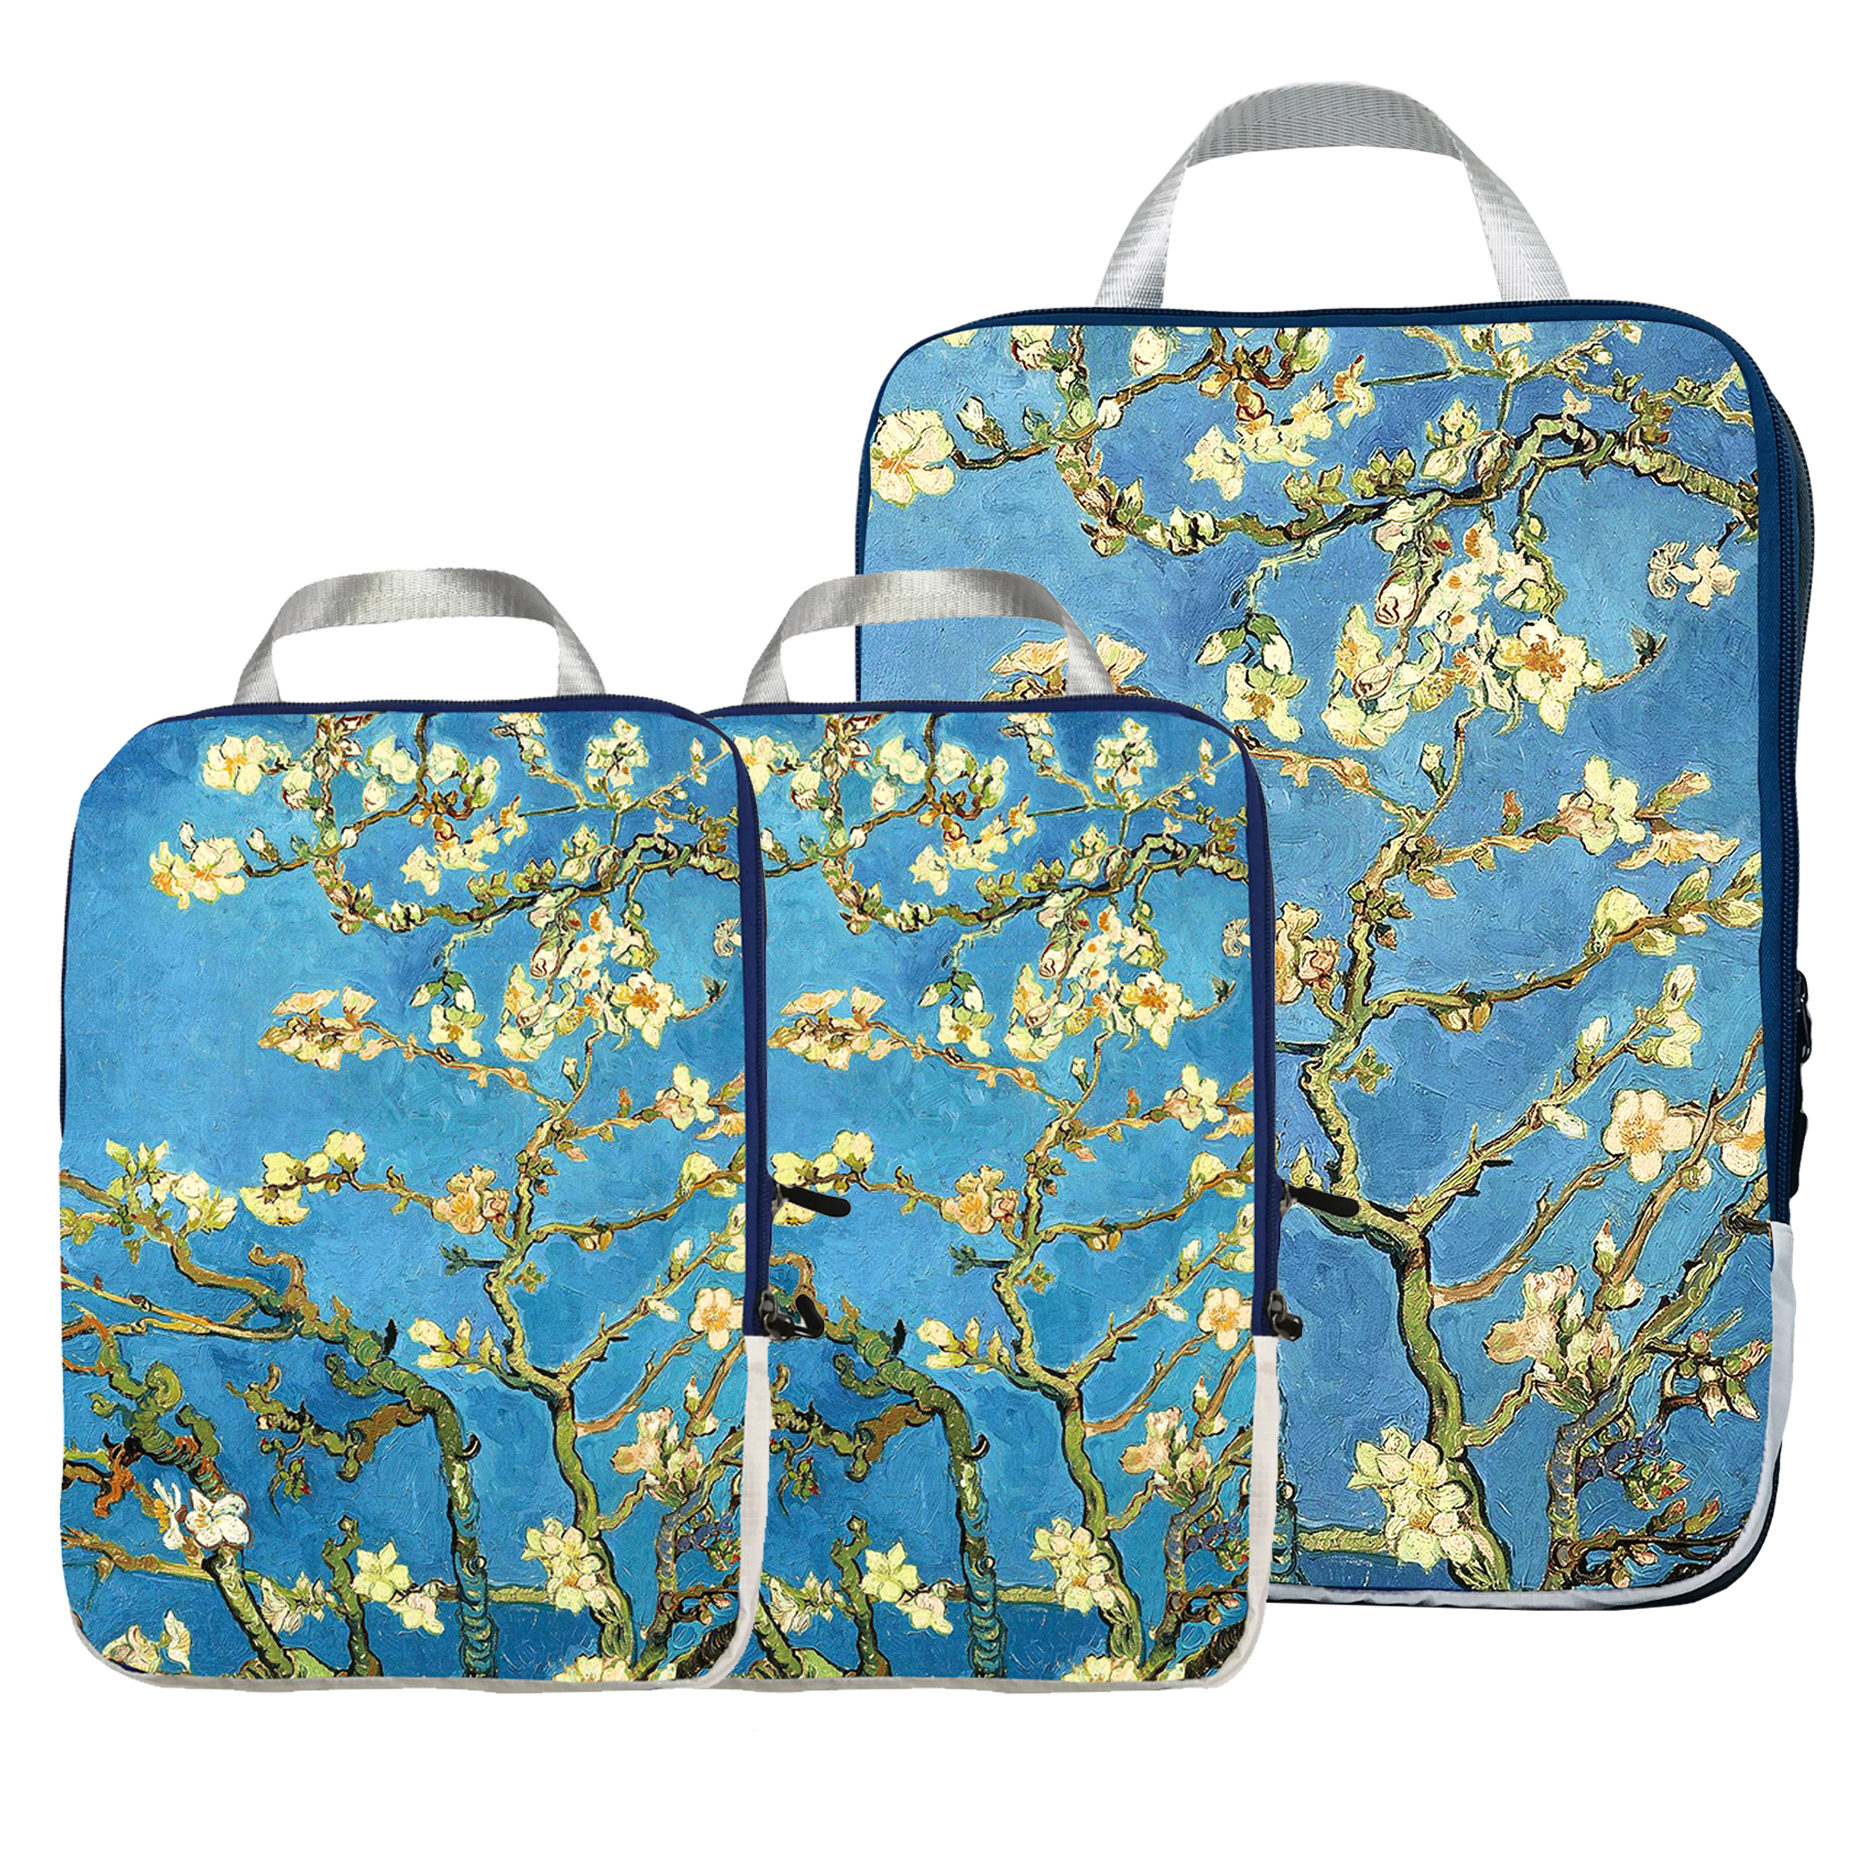 Packing Cubes Travel Organizer Set 3 Pcs - Compression Packing Cubes For Carryon Luggage